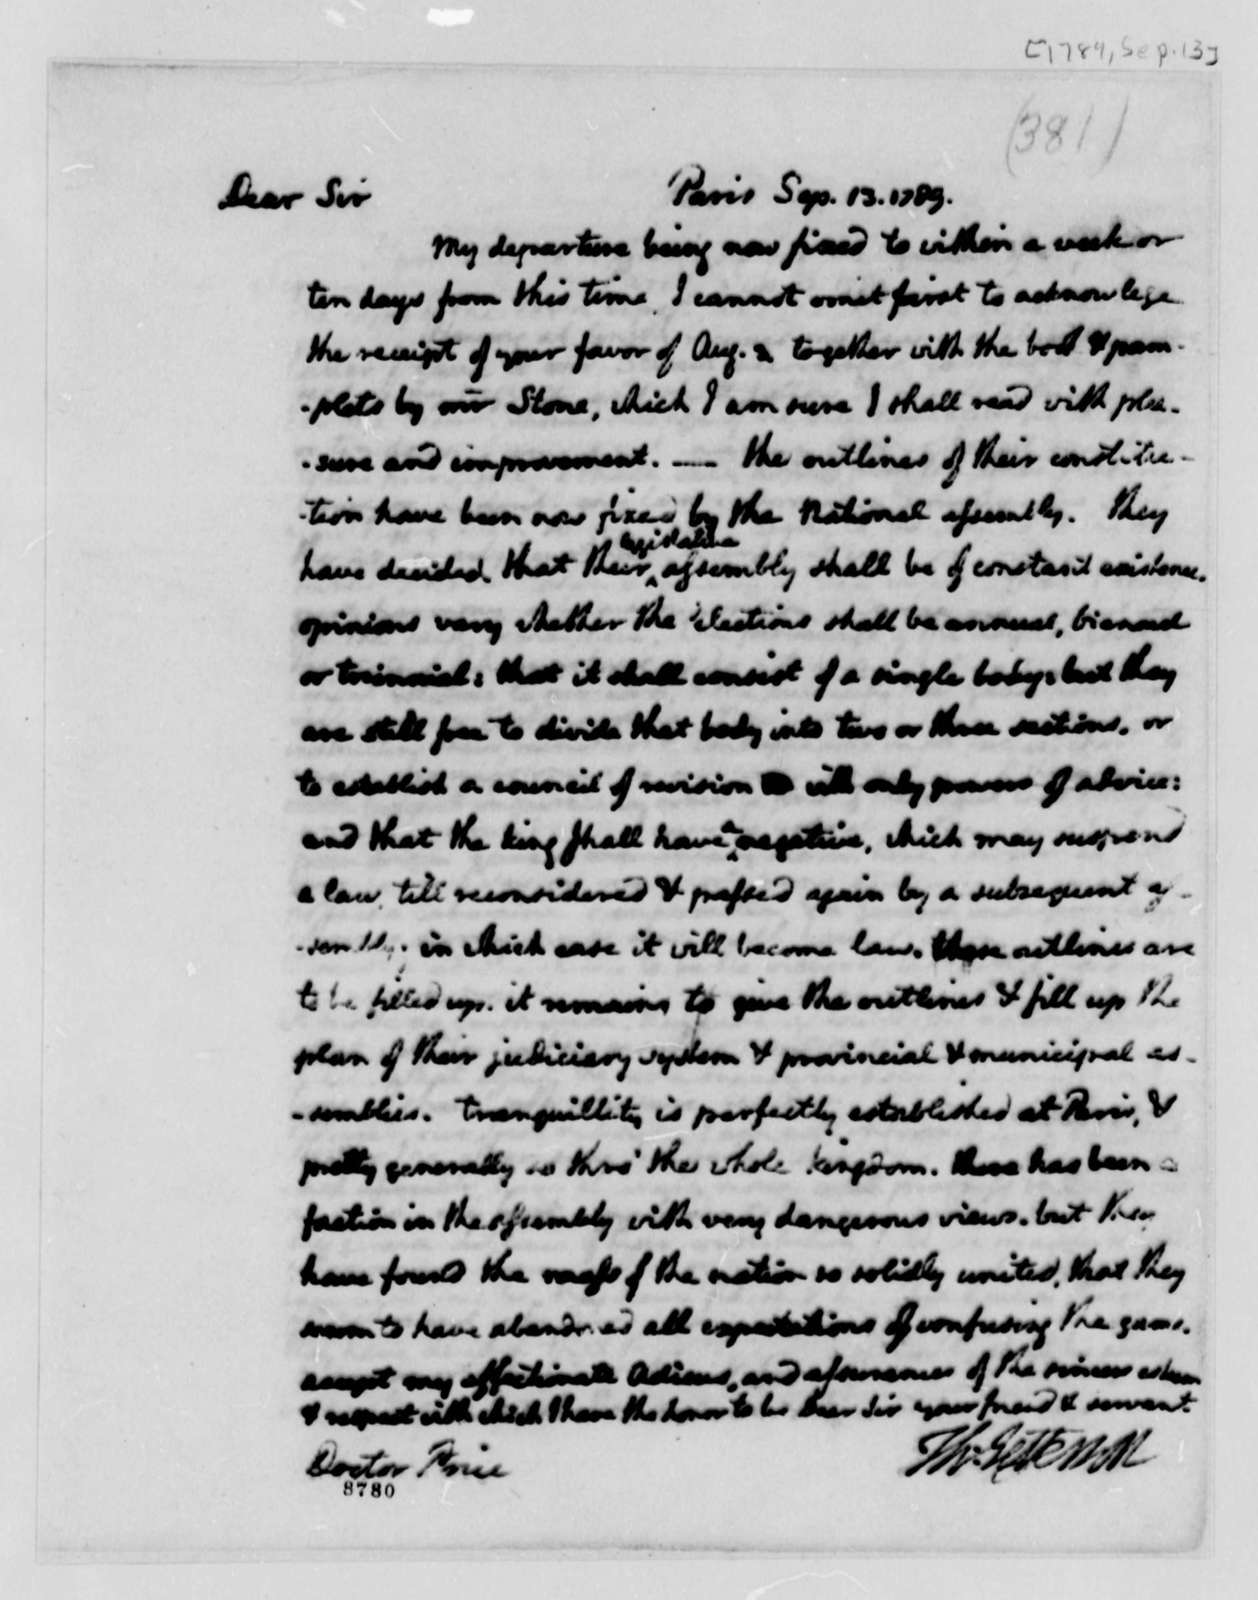 Thomas Jefferson to Richard Price, September 13, 1789